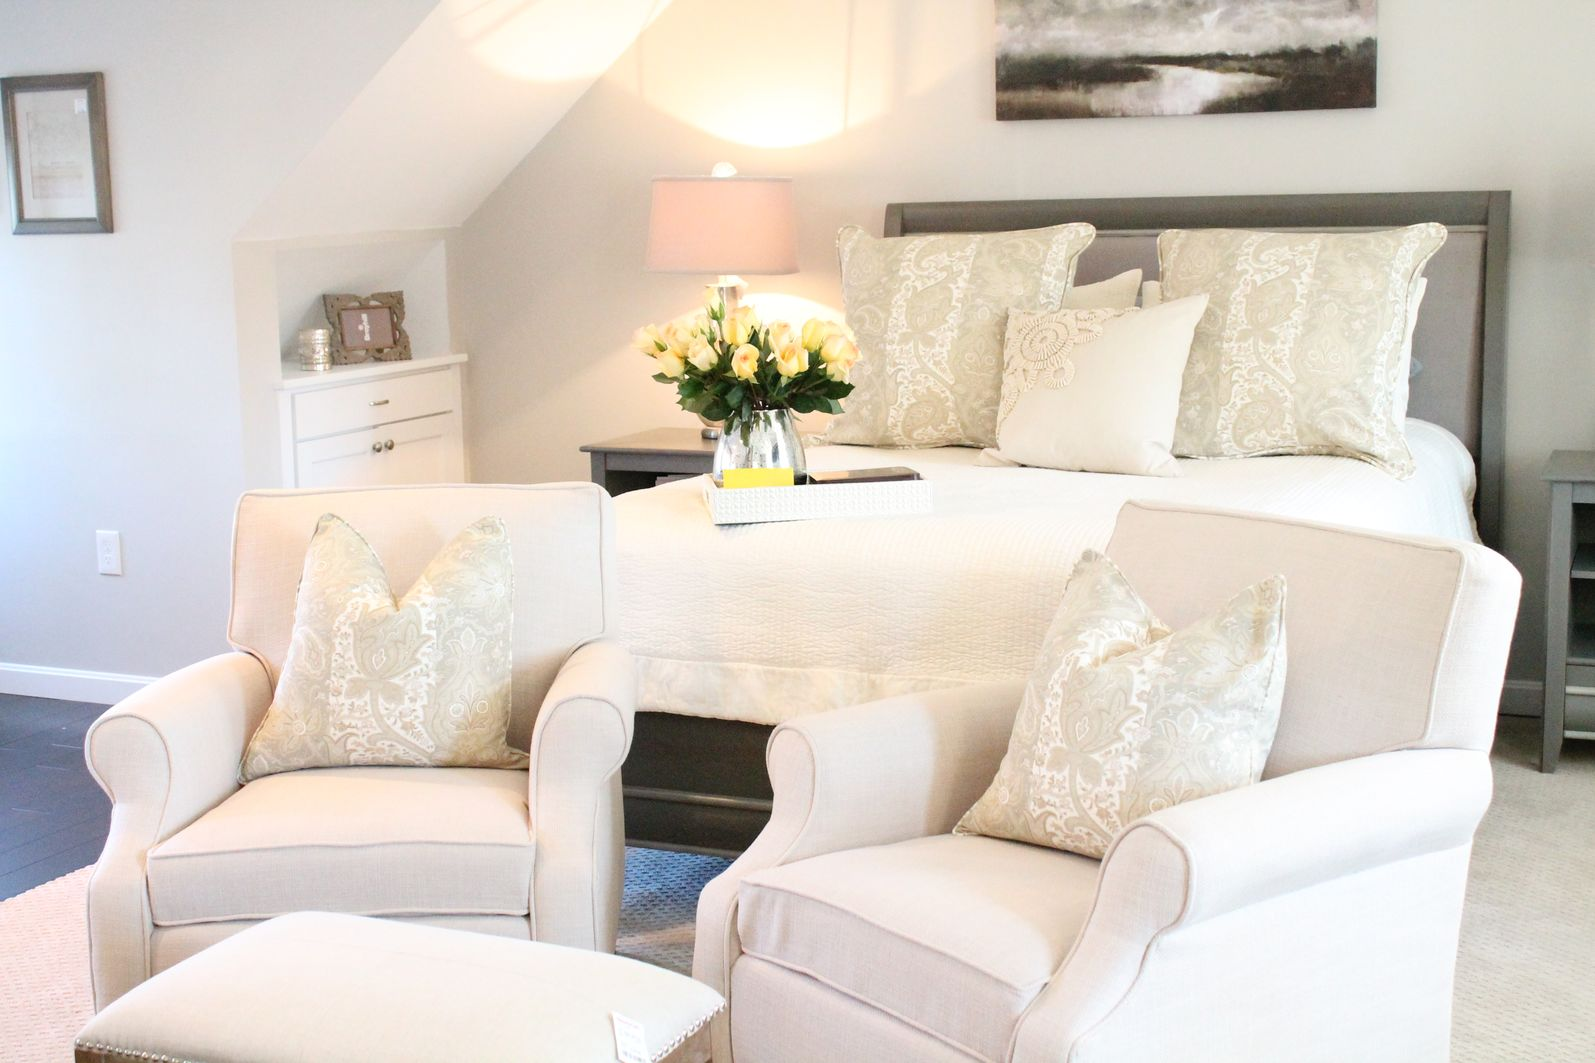 Comfortable Chairs for Bedroom Sitting Area - HomesFeed on Comfy Bedroom  id=28024